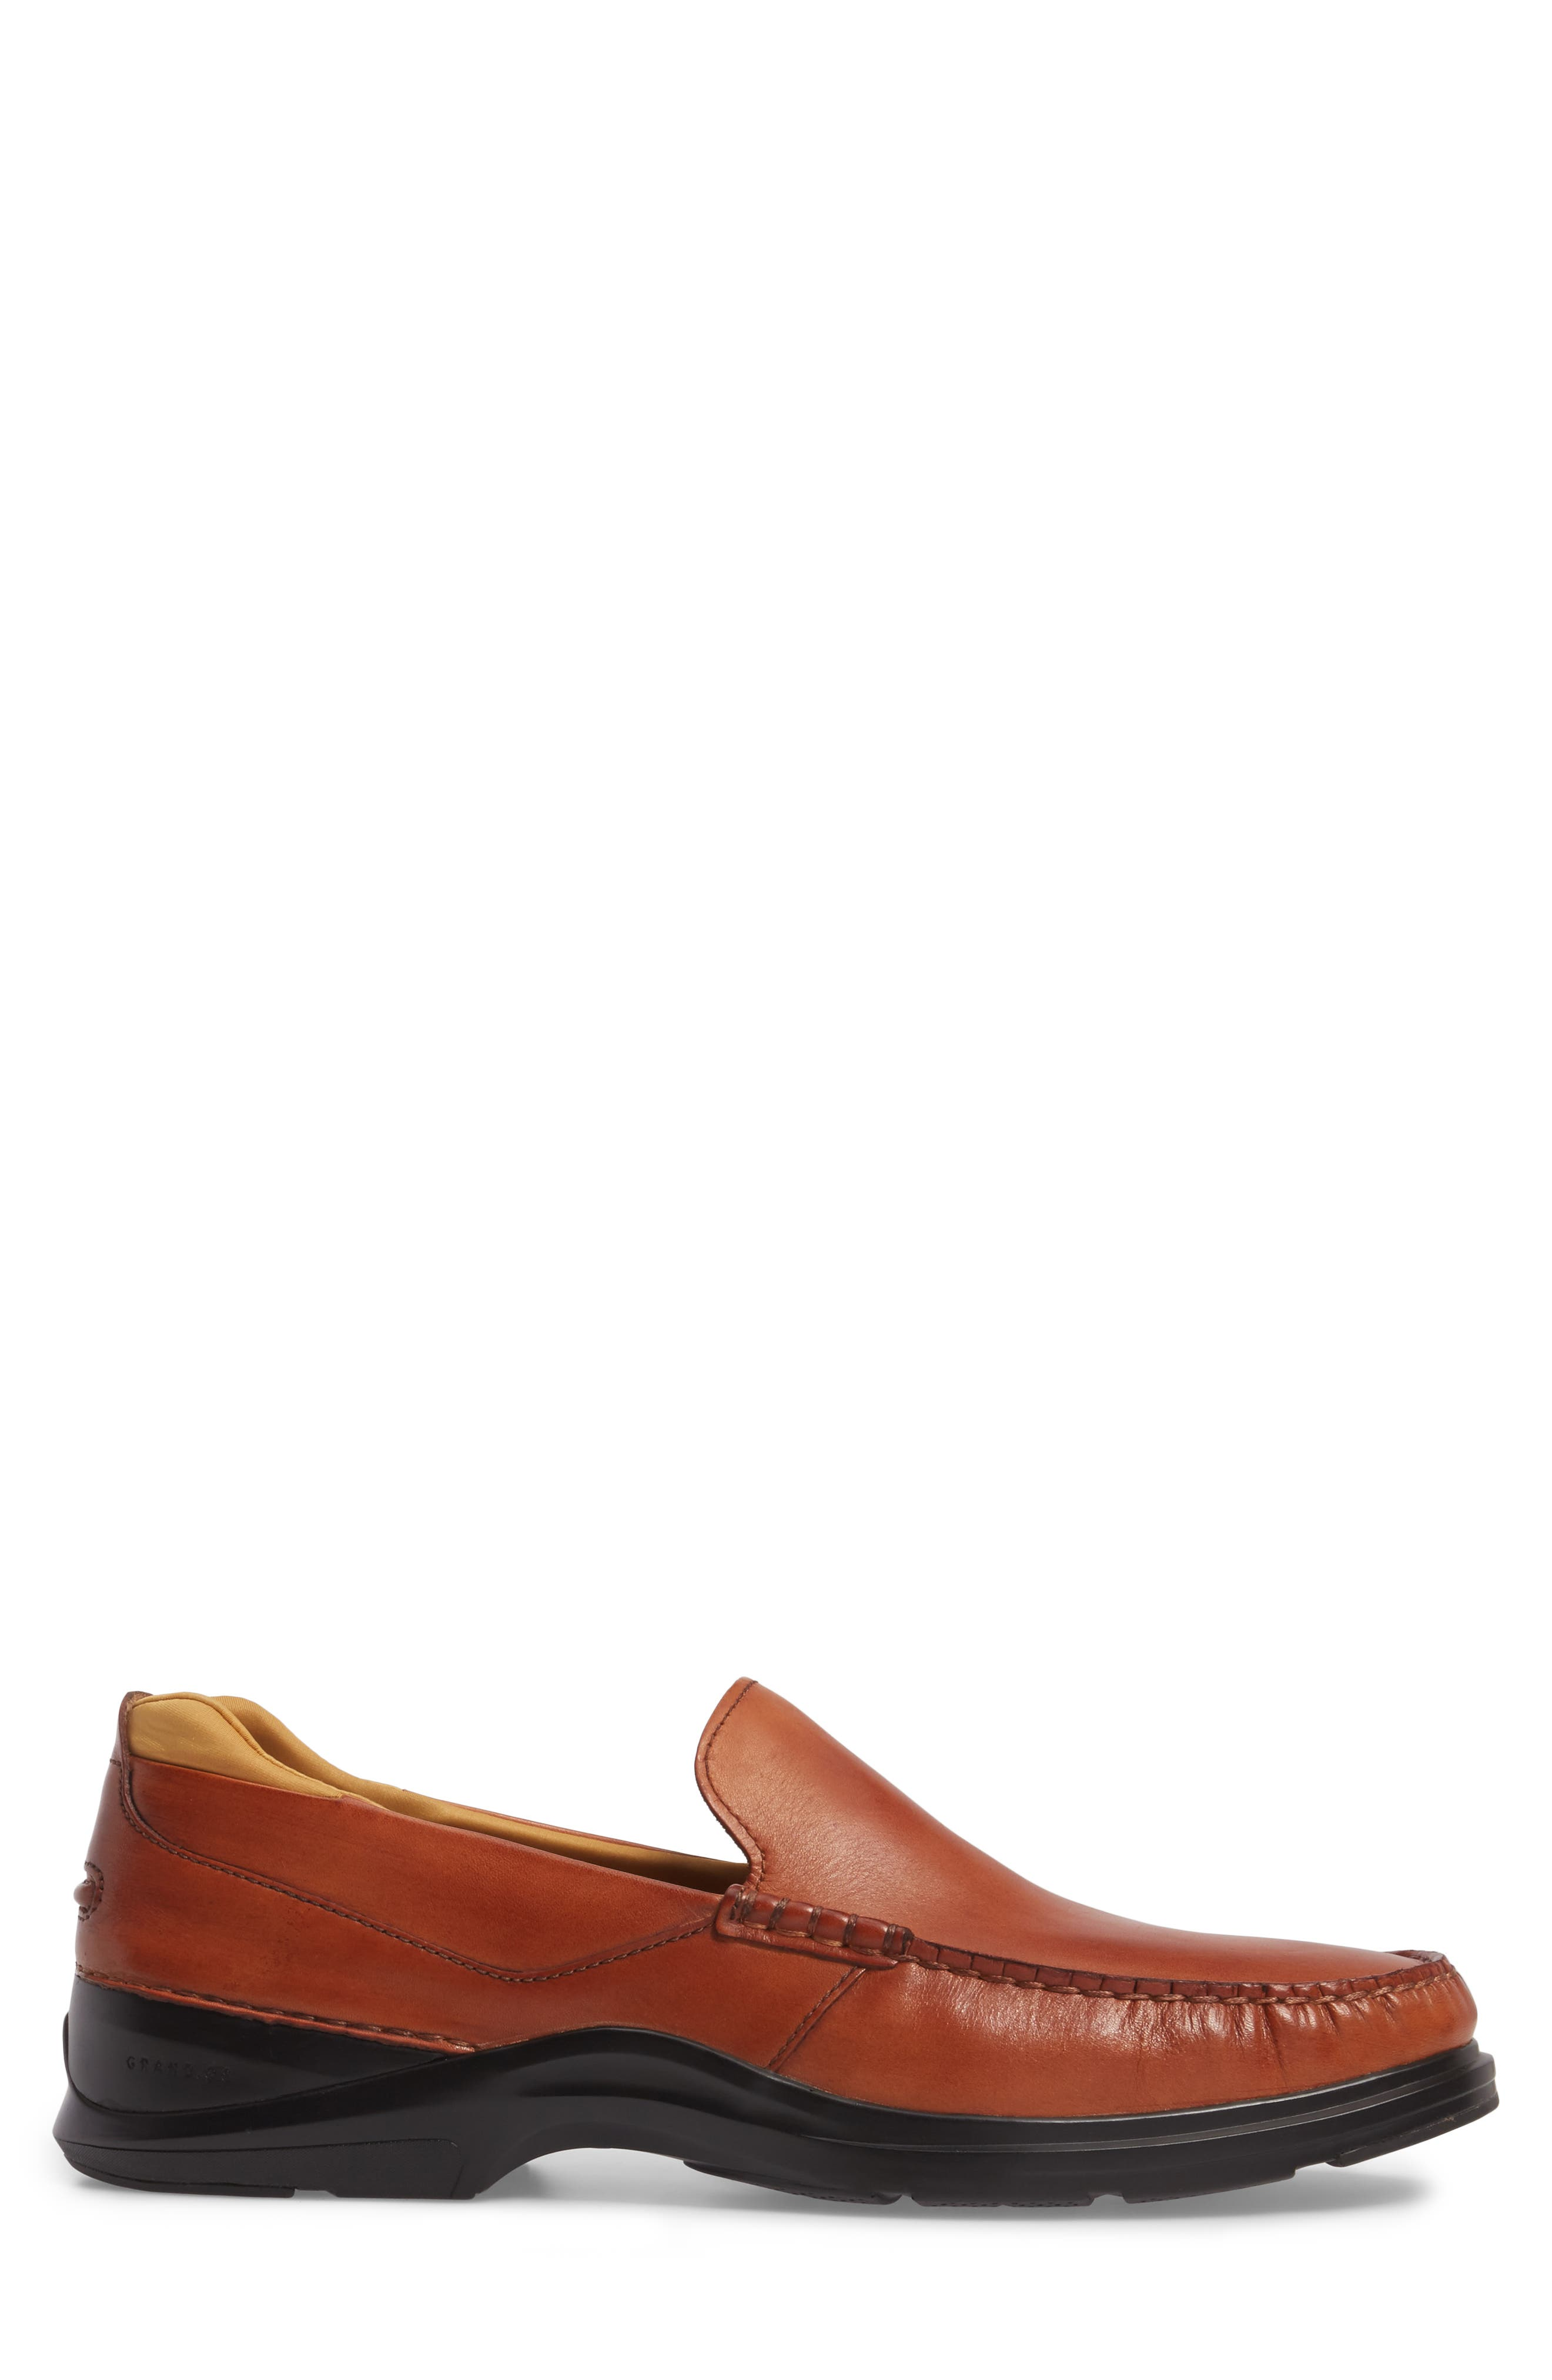 Alternate Image 3  - Cole Haan Bancroft Loafer (Men)